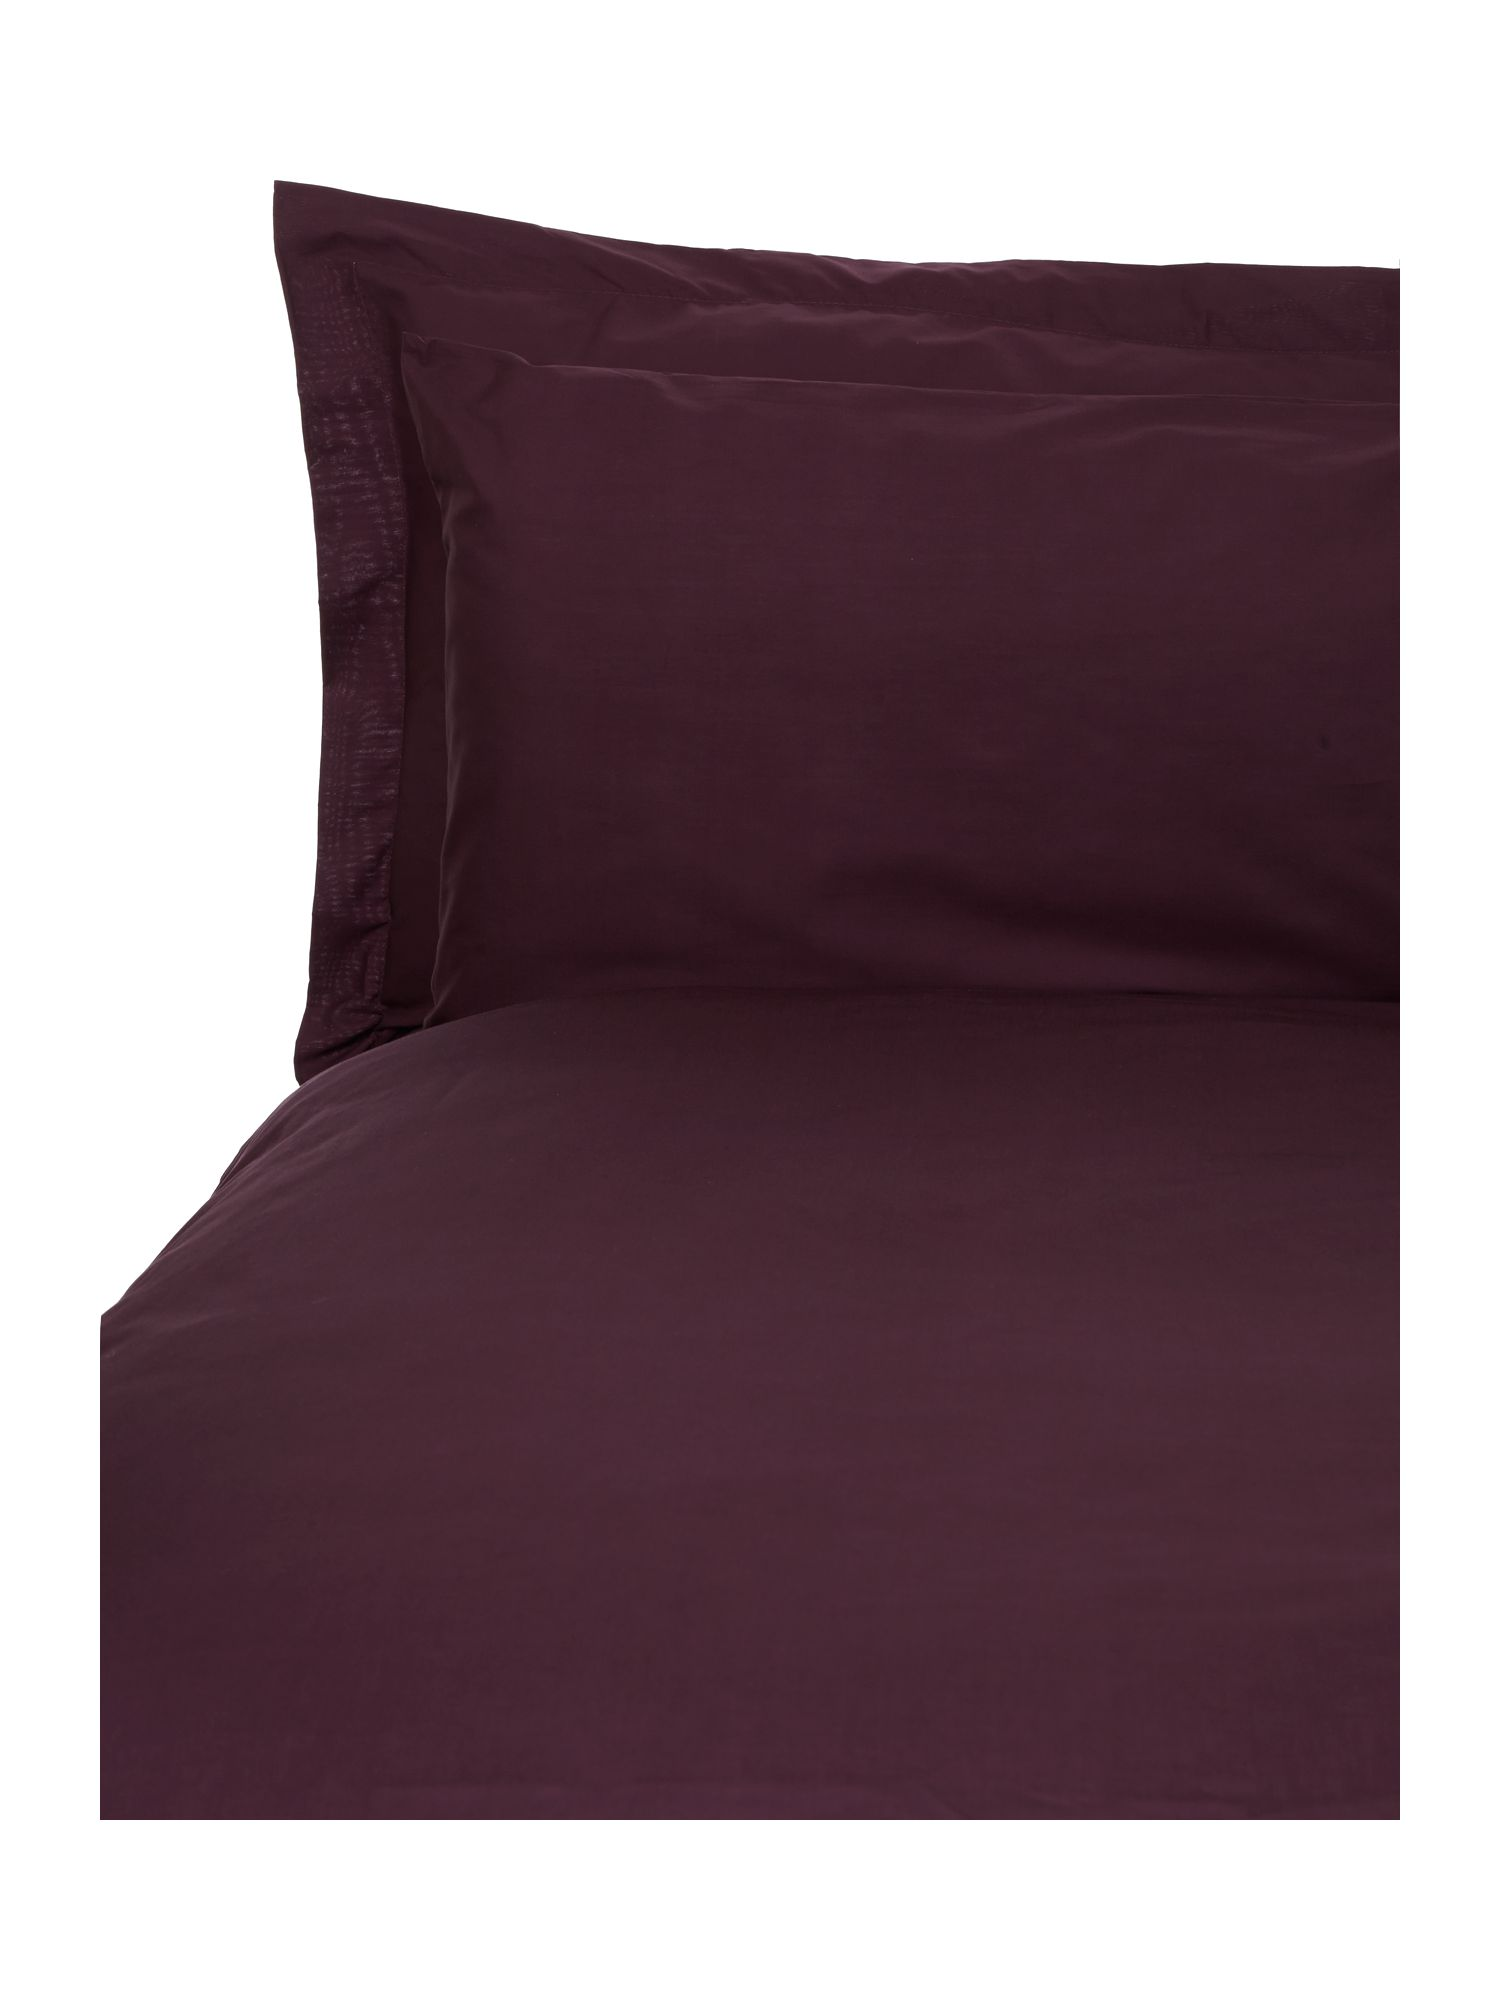 100% cotton plain dye bedlinen in purple